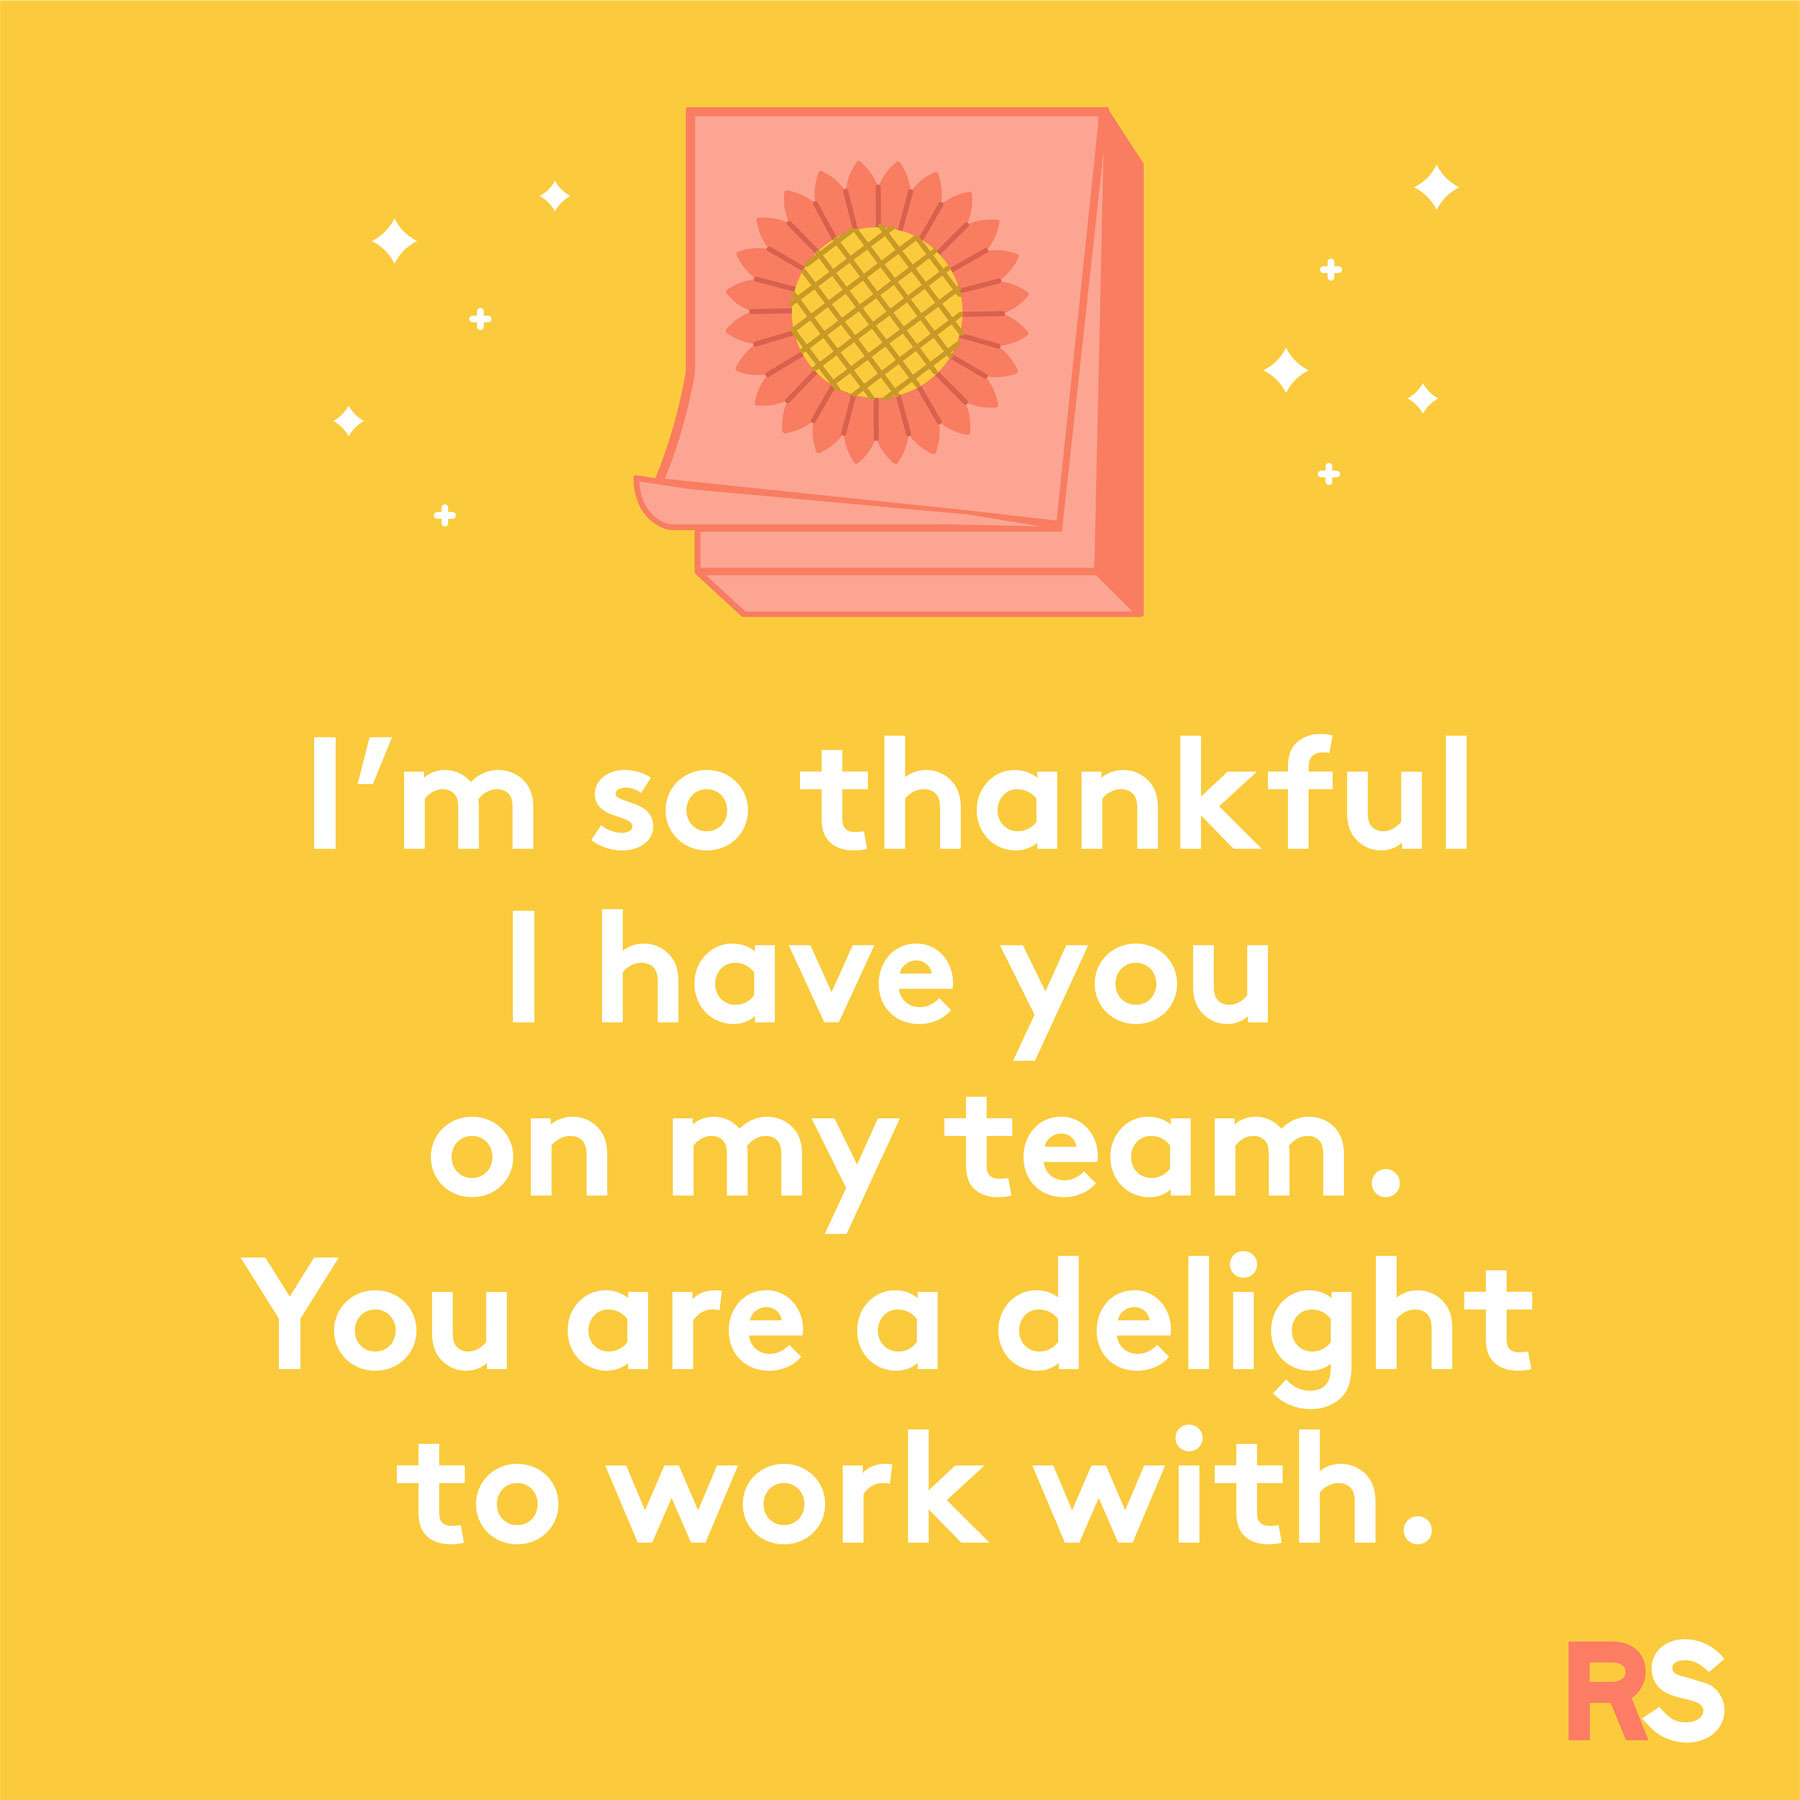 Thanksgiving wishes, messages, captions - note to employee or coworker